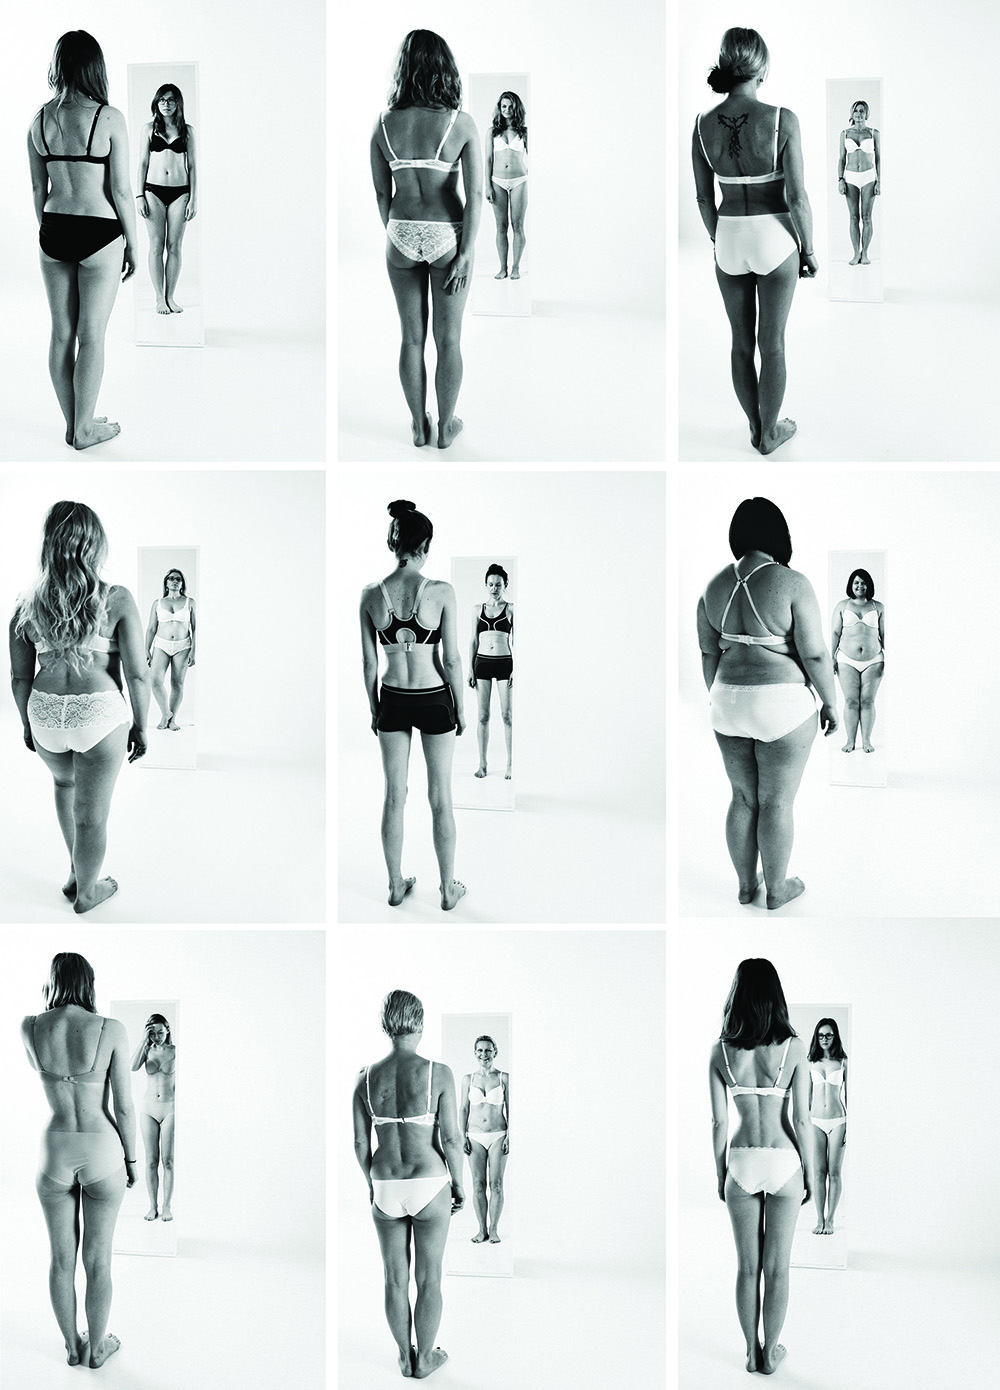 "{Lithuanian photographer  Neringa Rekašiūtė  has created a super powerful series which she named:  We. Women.  She wanted to strip down body-image issues by asking women to come face-to-face with their fears and insecurities by standing in their knickers in the mirror and having their photograph taken. ""These are women who had struggled with bulimia, anorexia, fat-shaming, skinny-shaming, violence from men,"" Rekasiute said. ""This project showed us lots of deep scars in our society.""}"